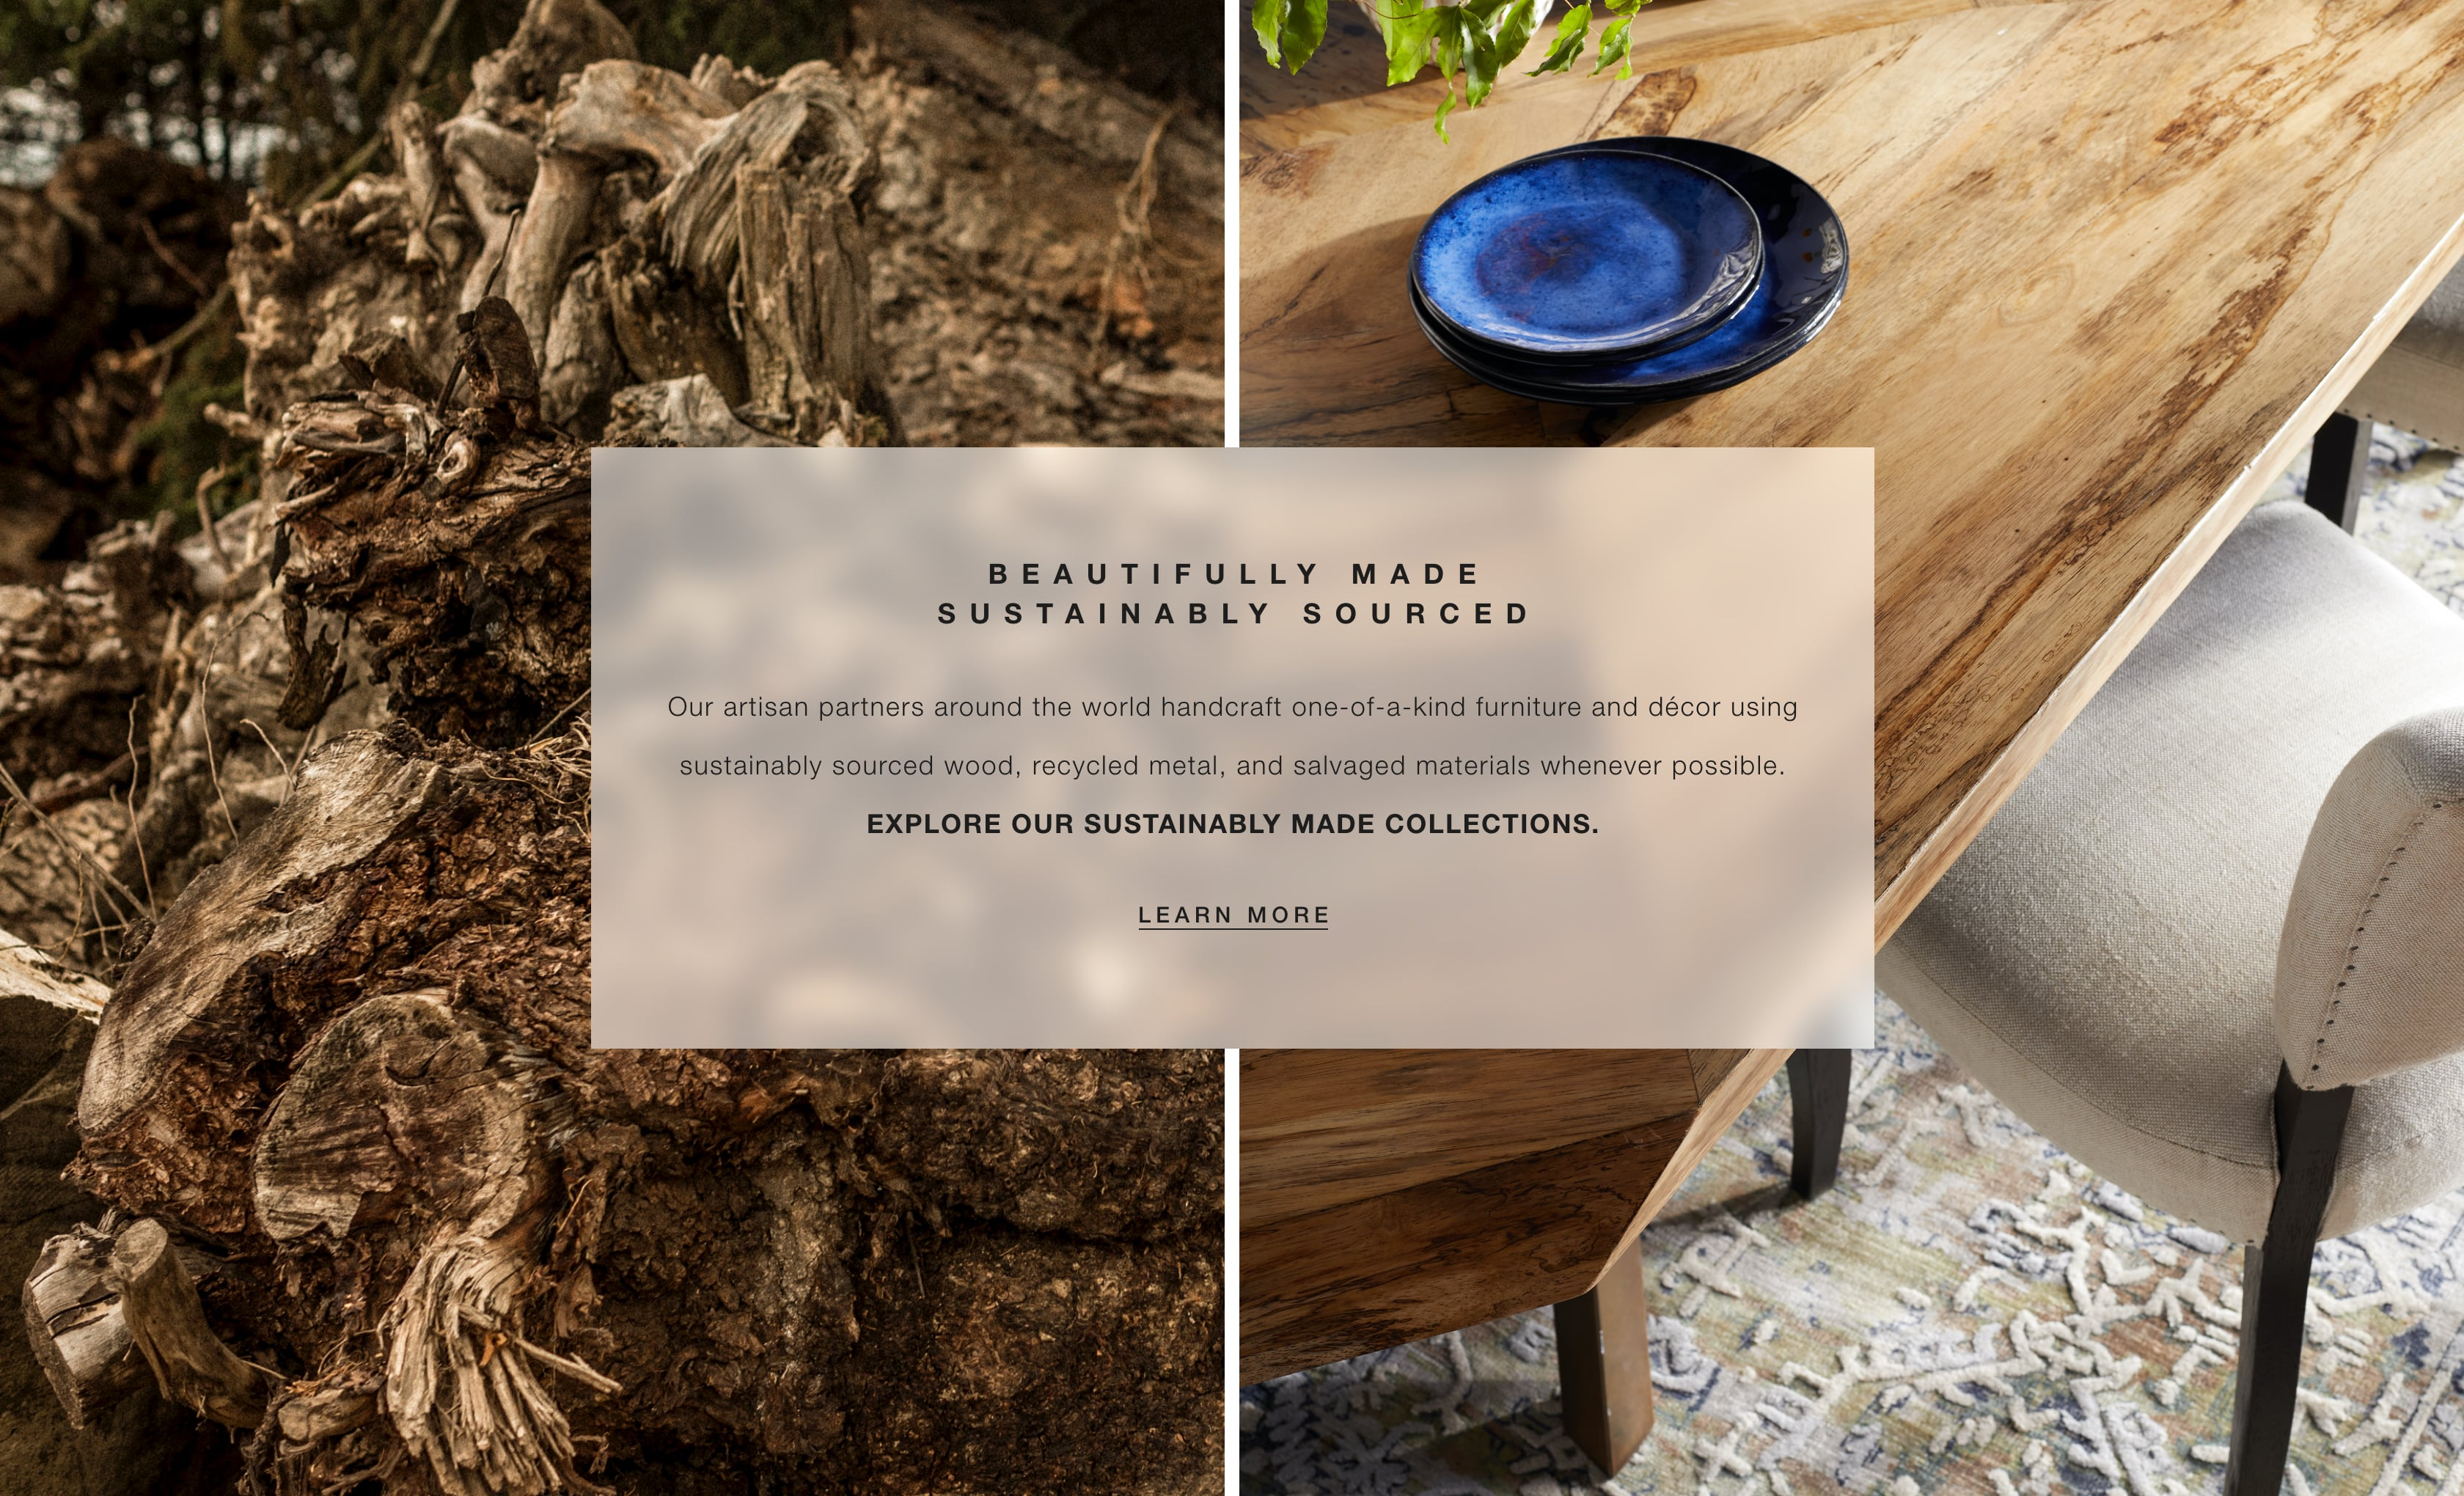 Shop Arhaus Sustainable Collections